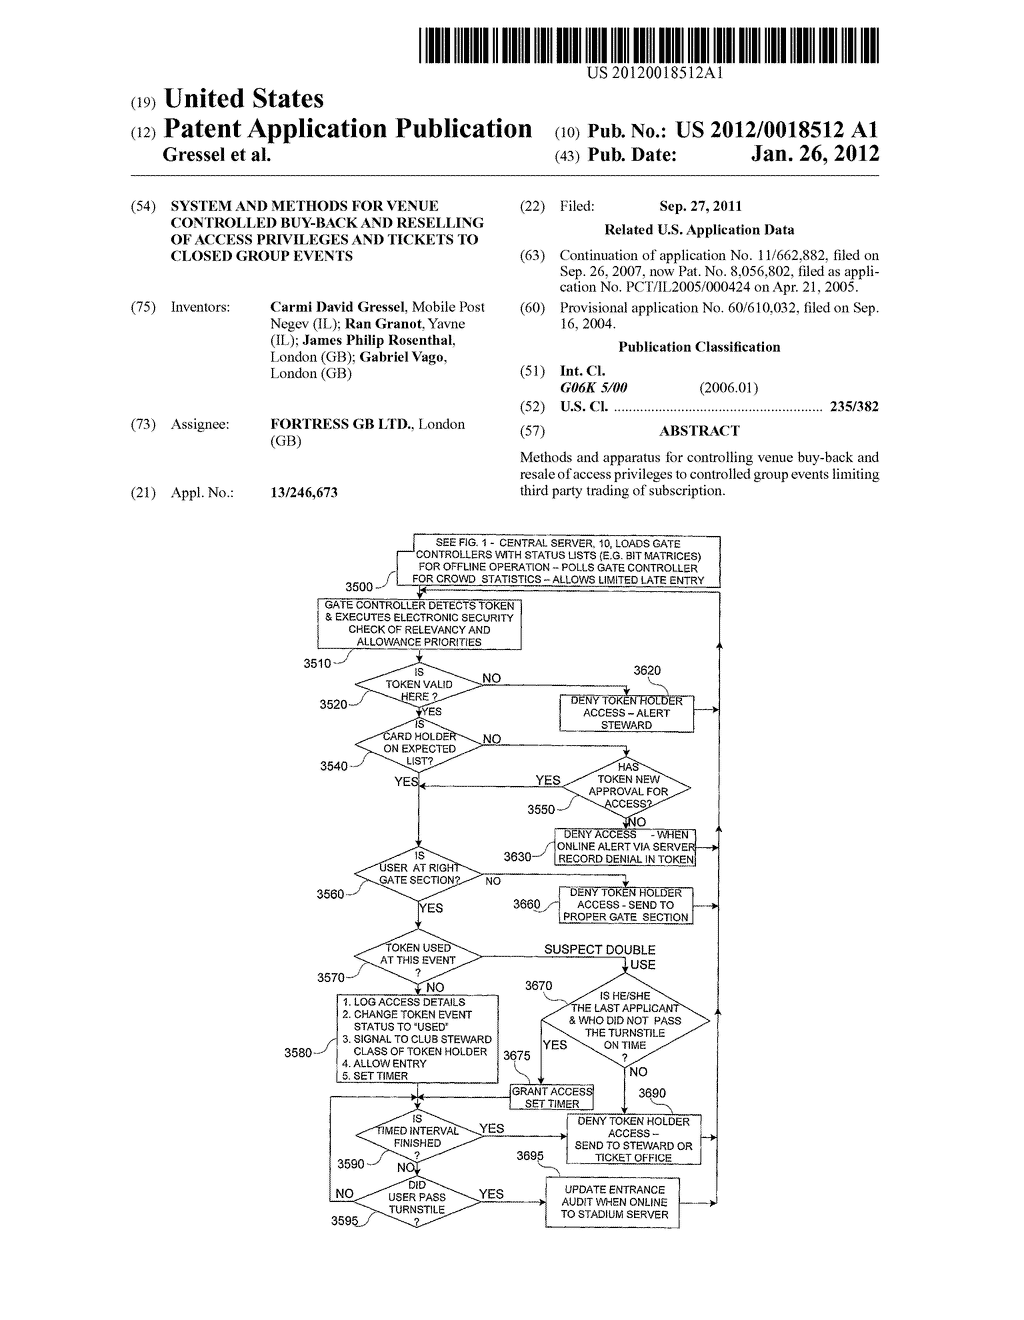 SYSTEM AND METHODS FOR VENUE CONTROLLED BUY-BACK AND RESELLING OF ACCESS     PRIVILEGES AND TICKETS TO CLOSED GROUP EVENTS - diagram, schematic, and image 01